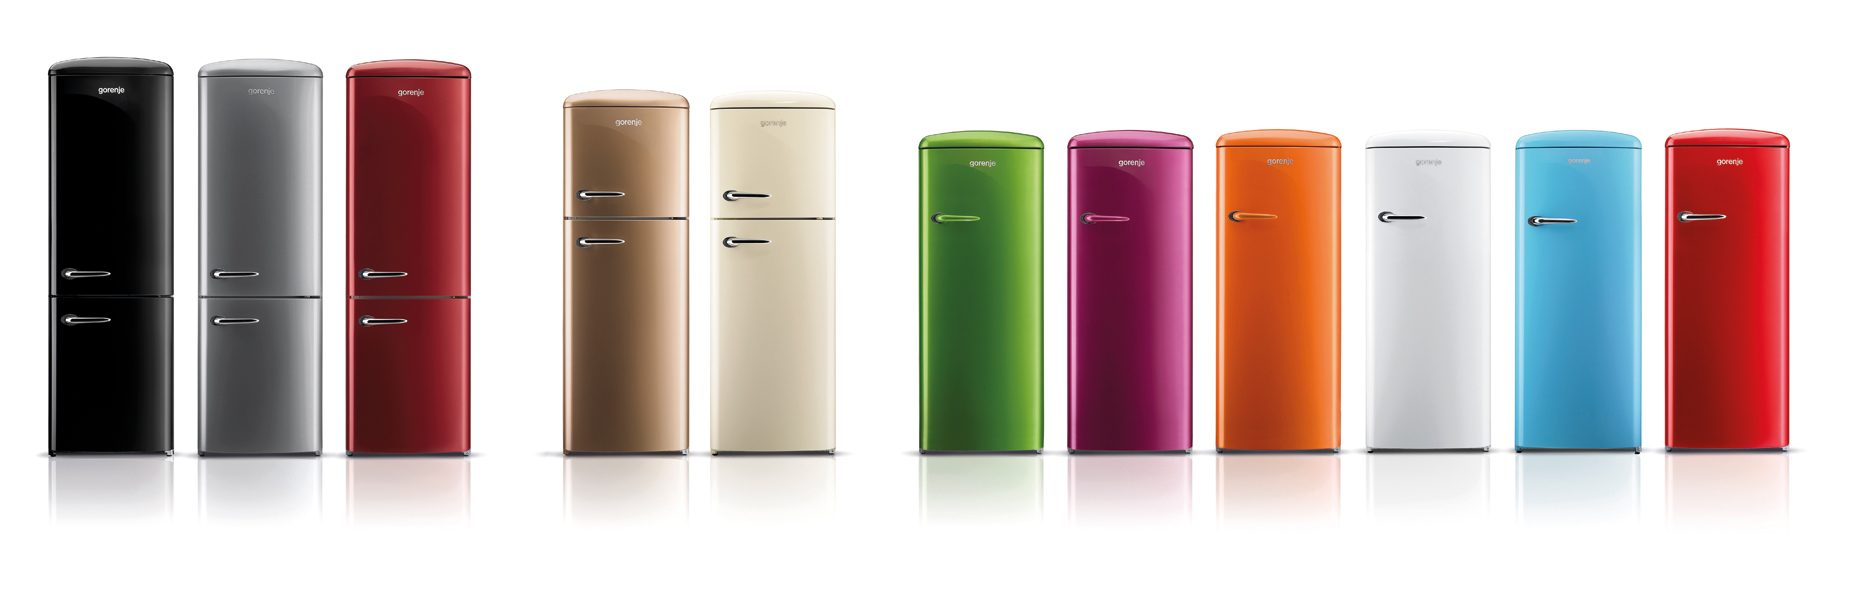 Gorenje retro collection gorenje for Kühl gefrierkombination retro look